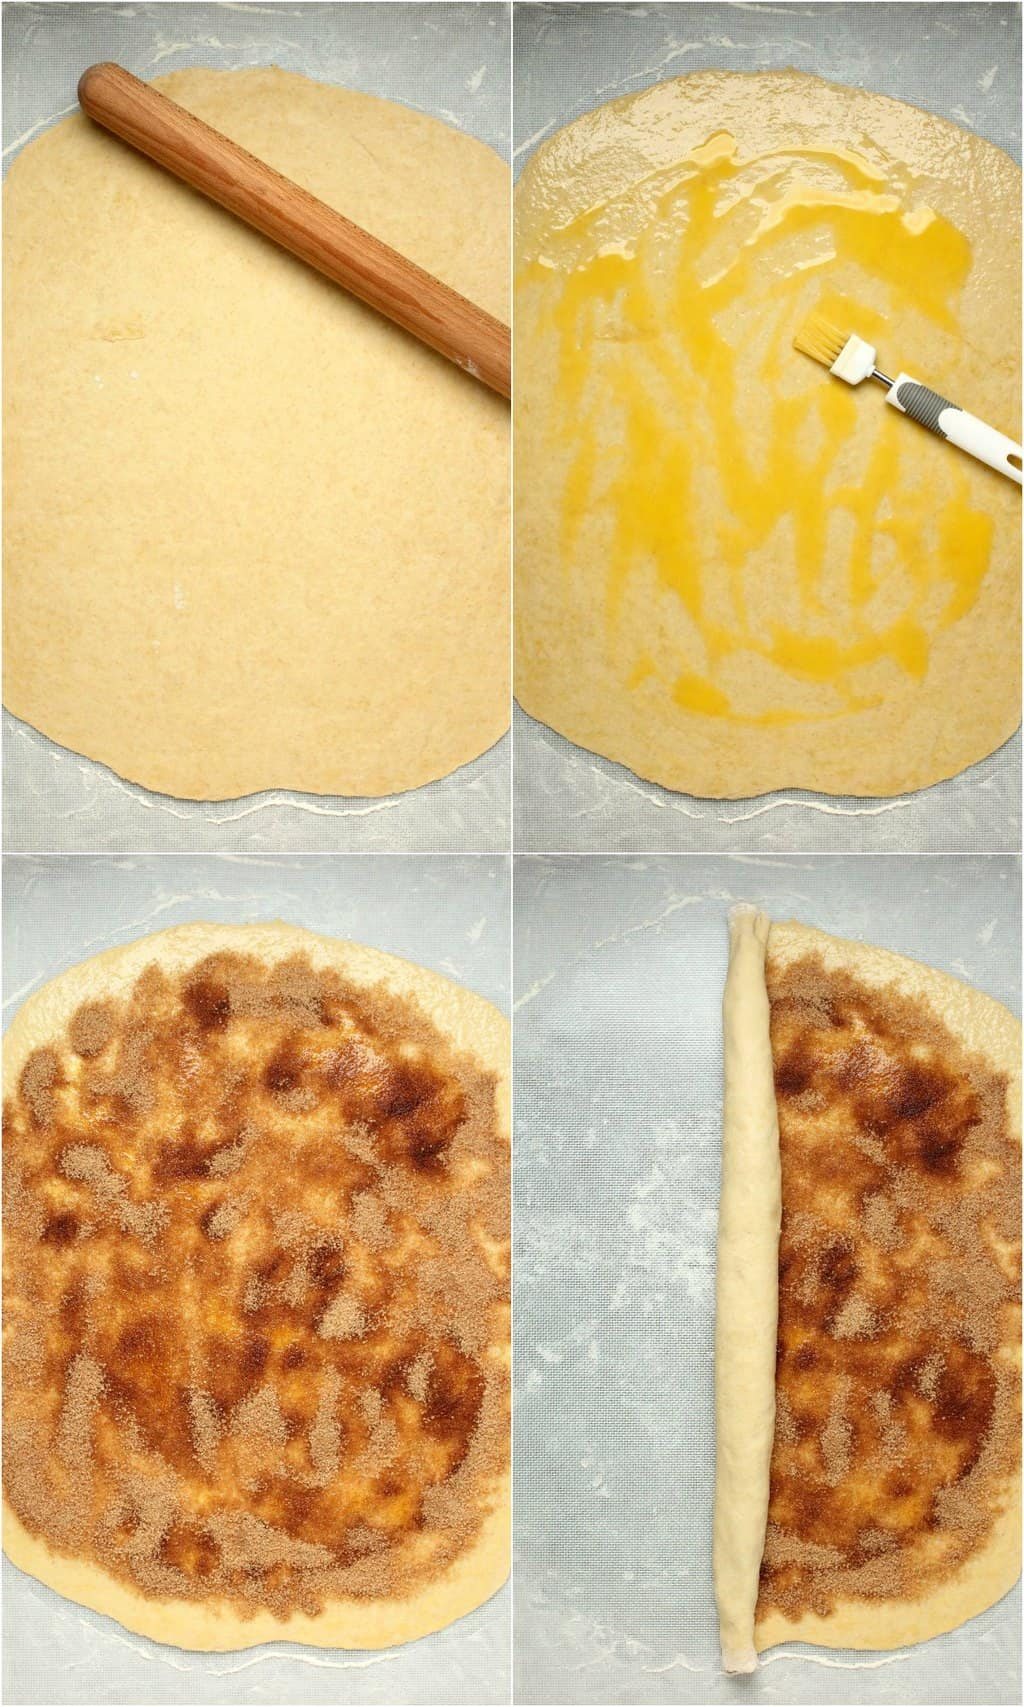 Step by step process photo collage of making vegan cinnamon rolls.